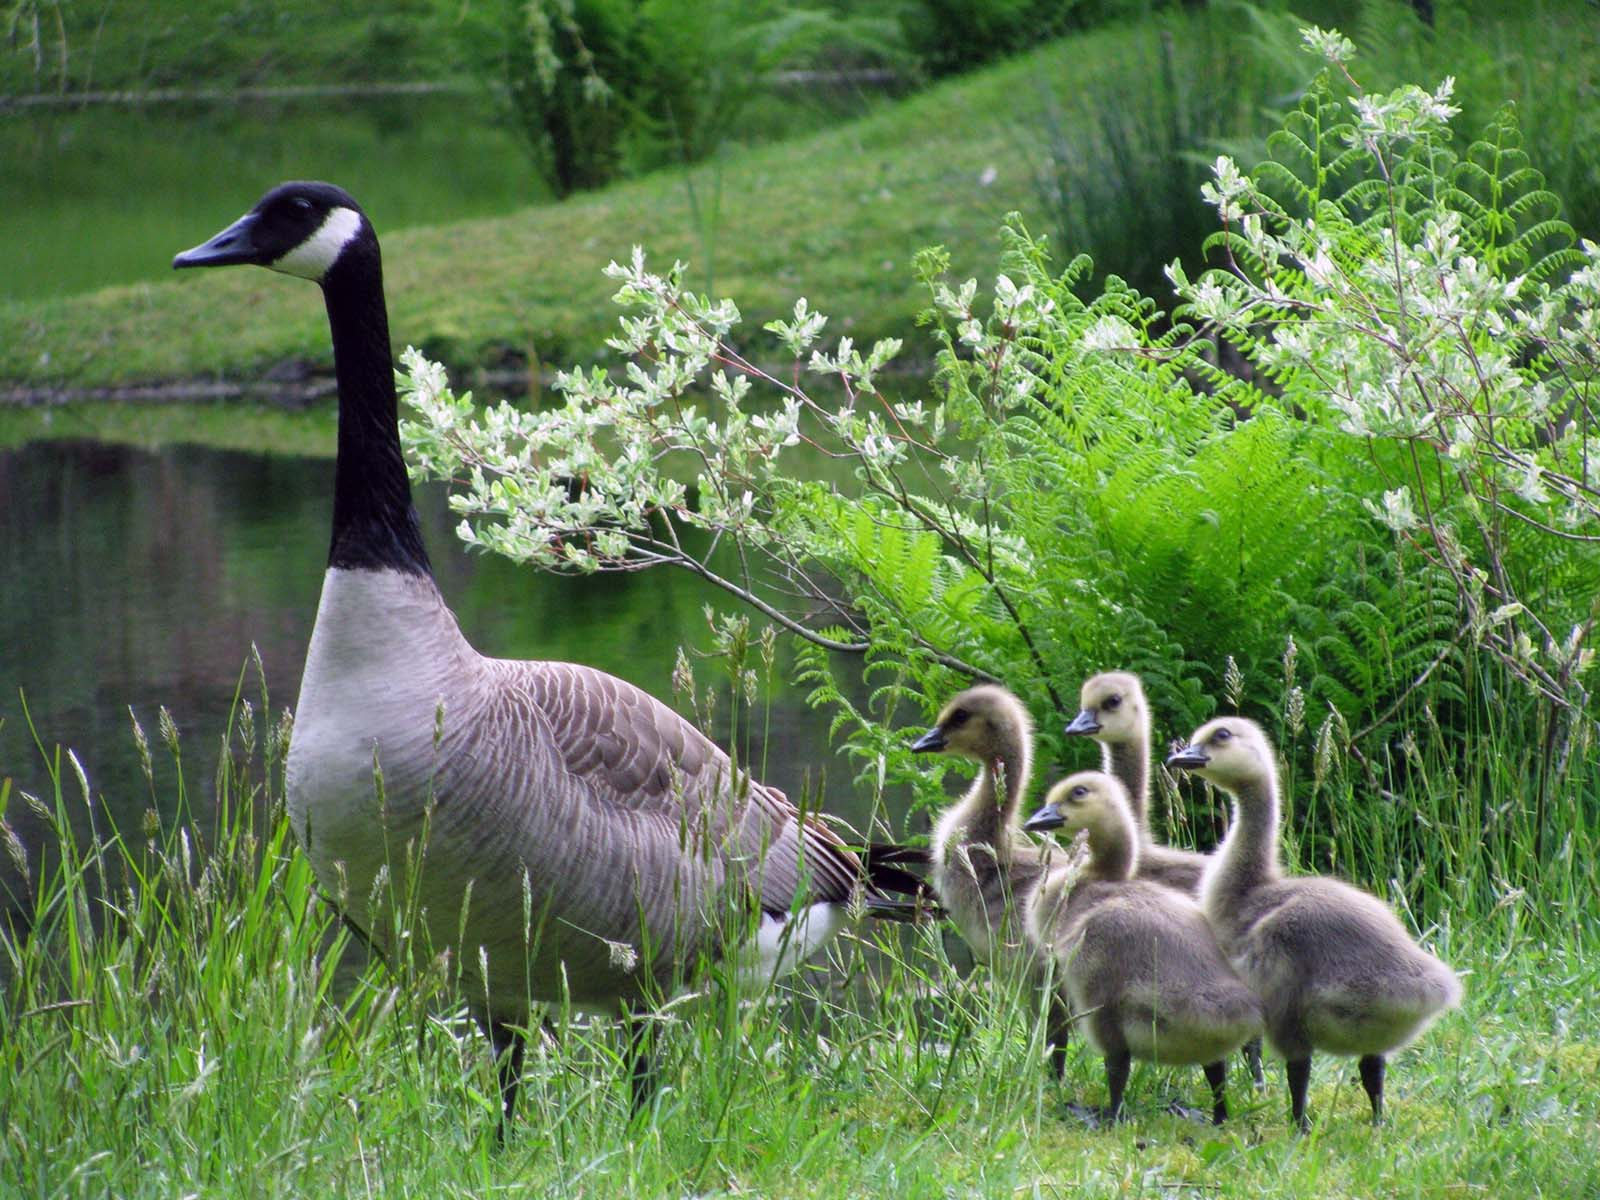 Group of wild canada geese with a parent and four cute goslings by water on the grass